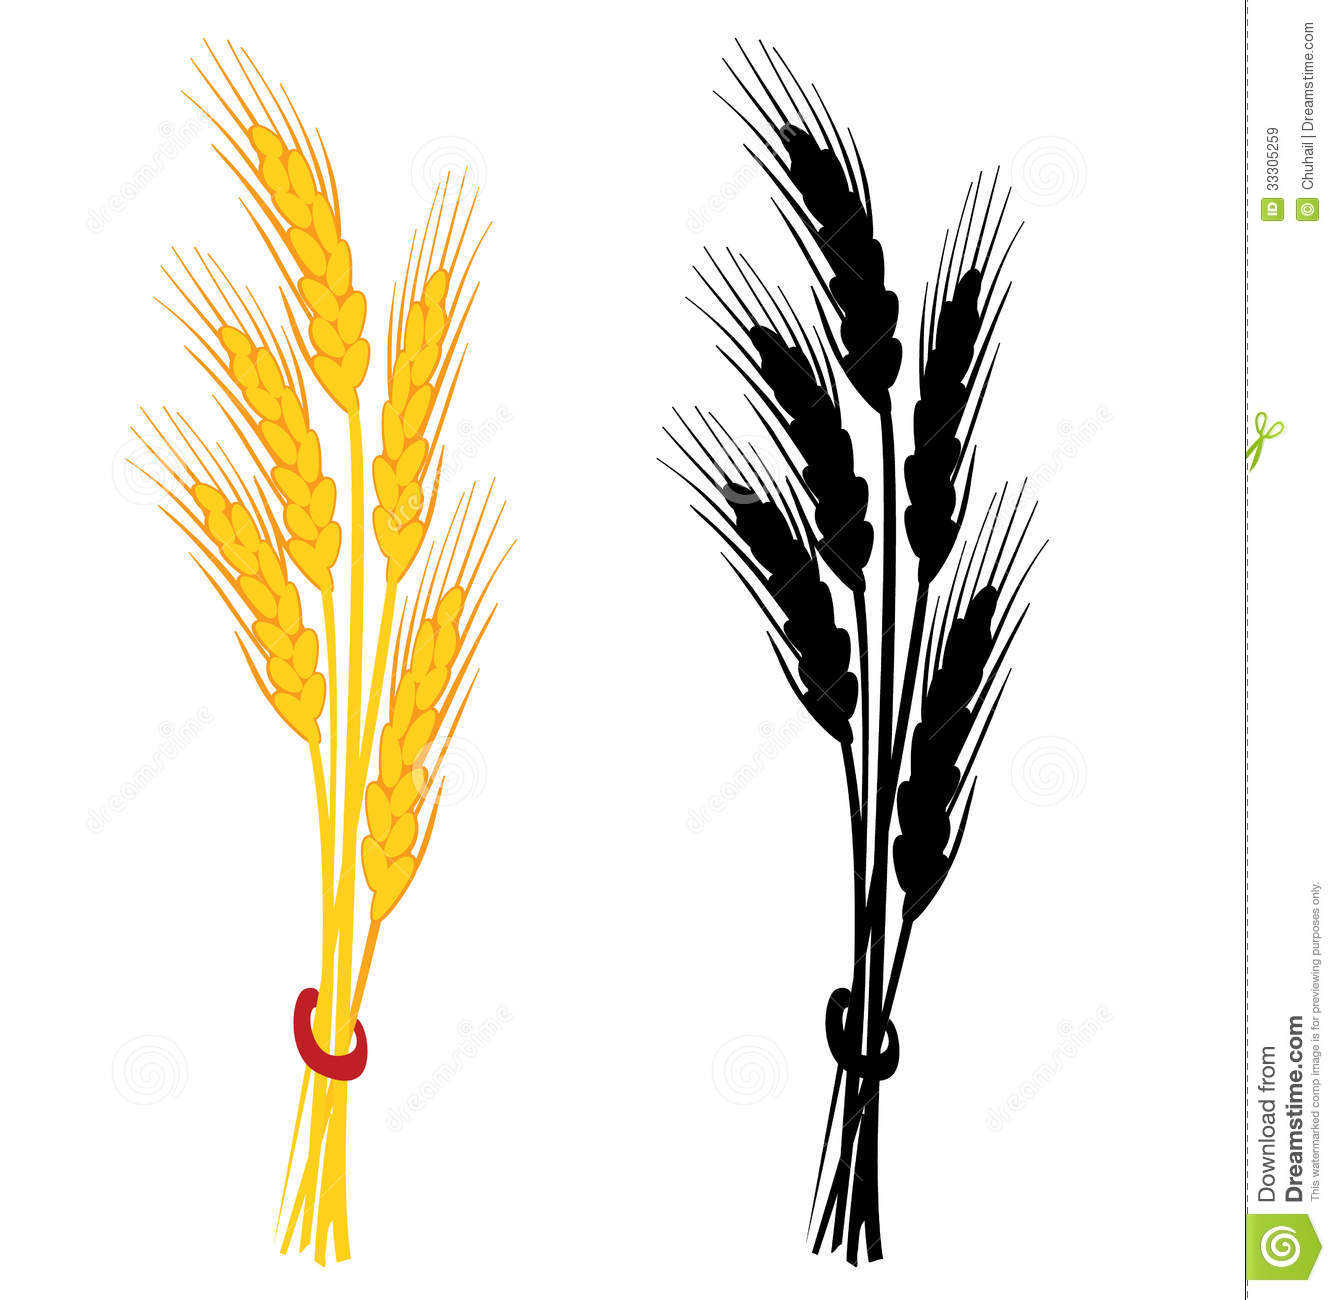 Wheat Ear Vector Illustration Royalty Free Stock Images   Image